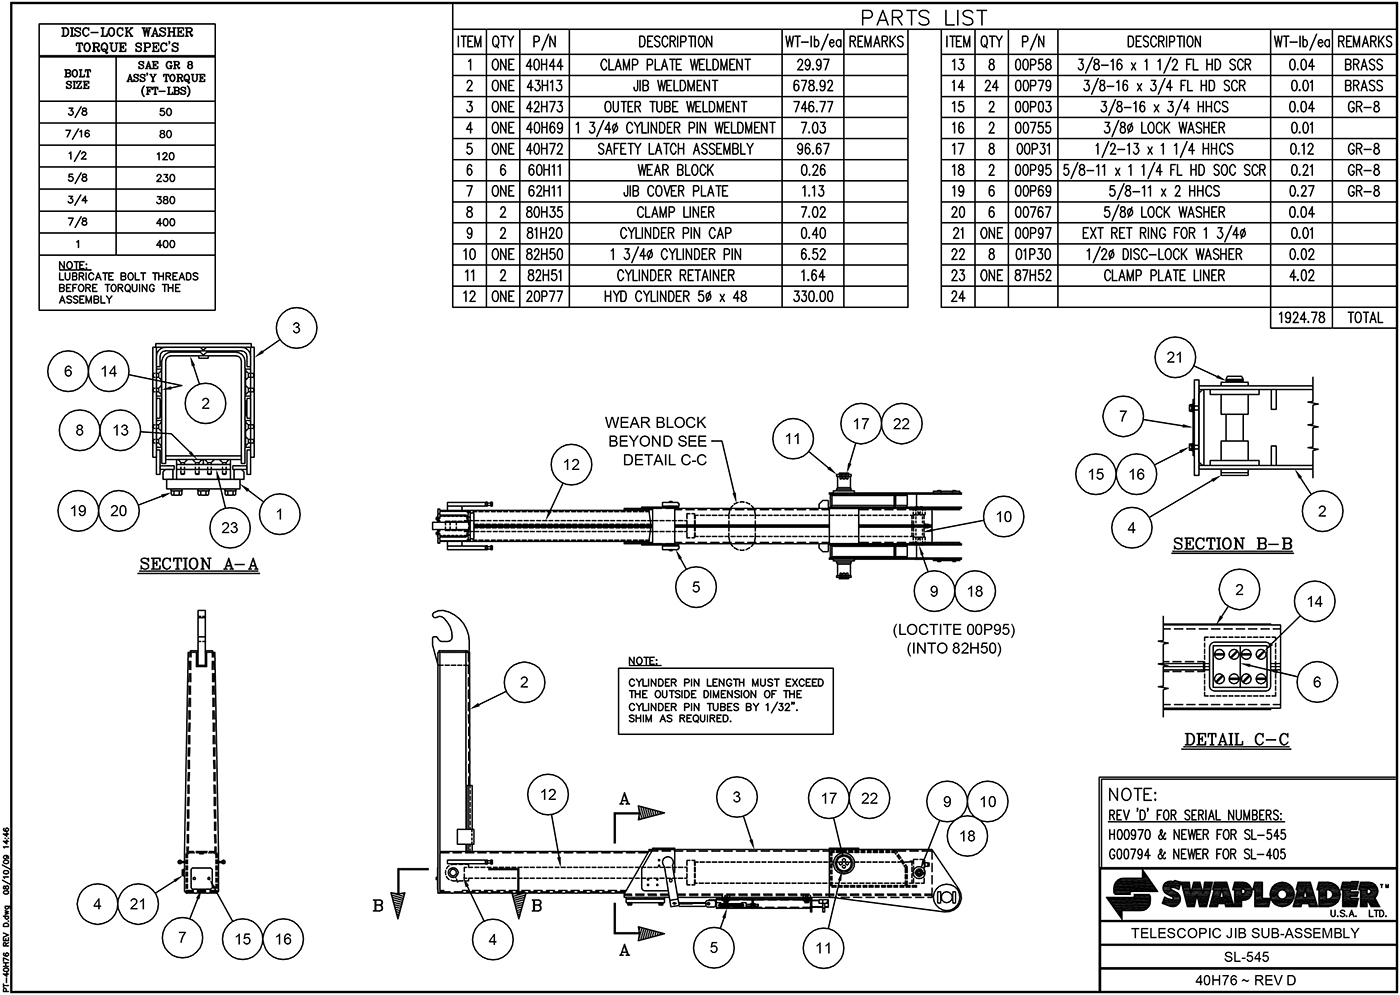 SL-545 Telescopic Jib Sub-Assembly (Revision D) Diagram